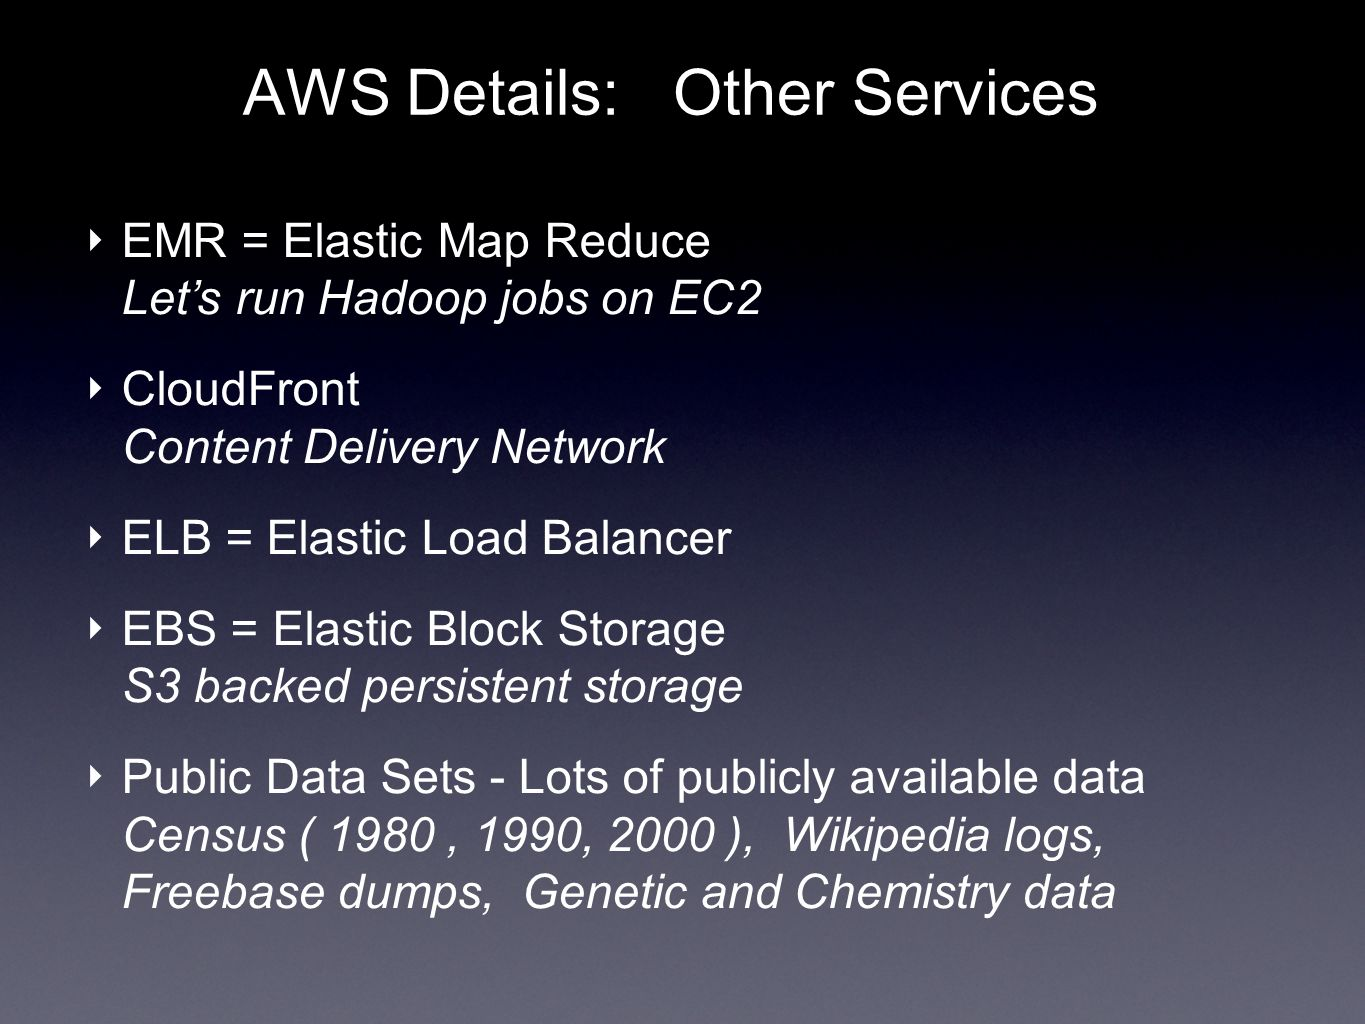 AWS Details: Other Services EMR = Elastic Map Reduce Lets run Hadoop jobs on EC2 CloudFront Content Delivery Network ELB = Elastic Load Balancer EBS = Elastic Block Storage S3 backed persistent storage Public Data Sets - Lots of publicly available data Census ( 1980, 1990, 2000 ), Wikipedia logs, Freebase dumps, Genetic and Chemistry data